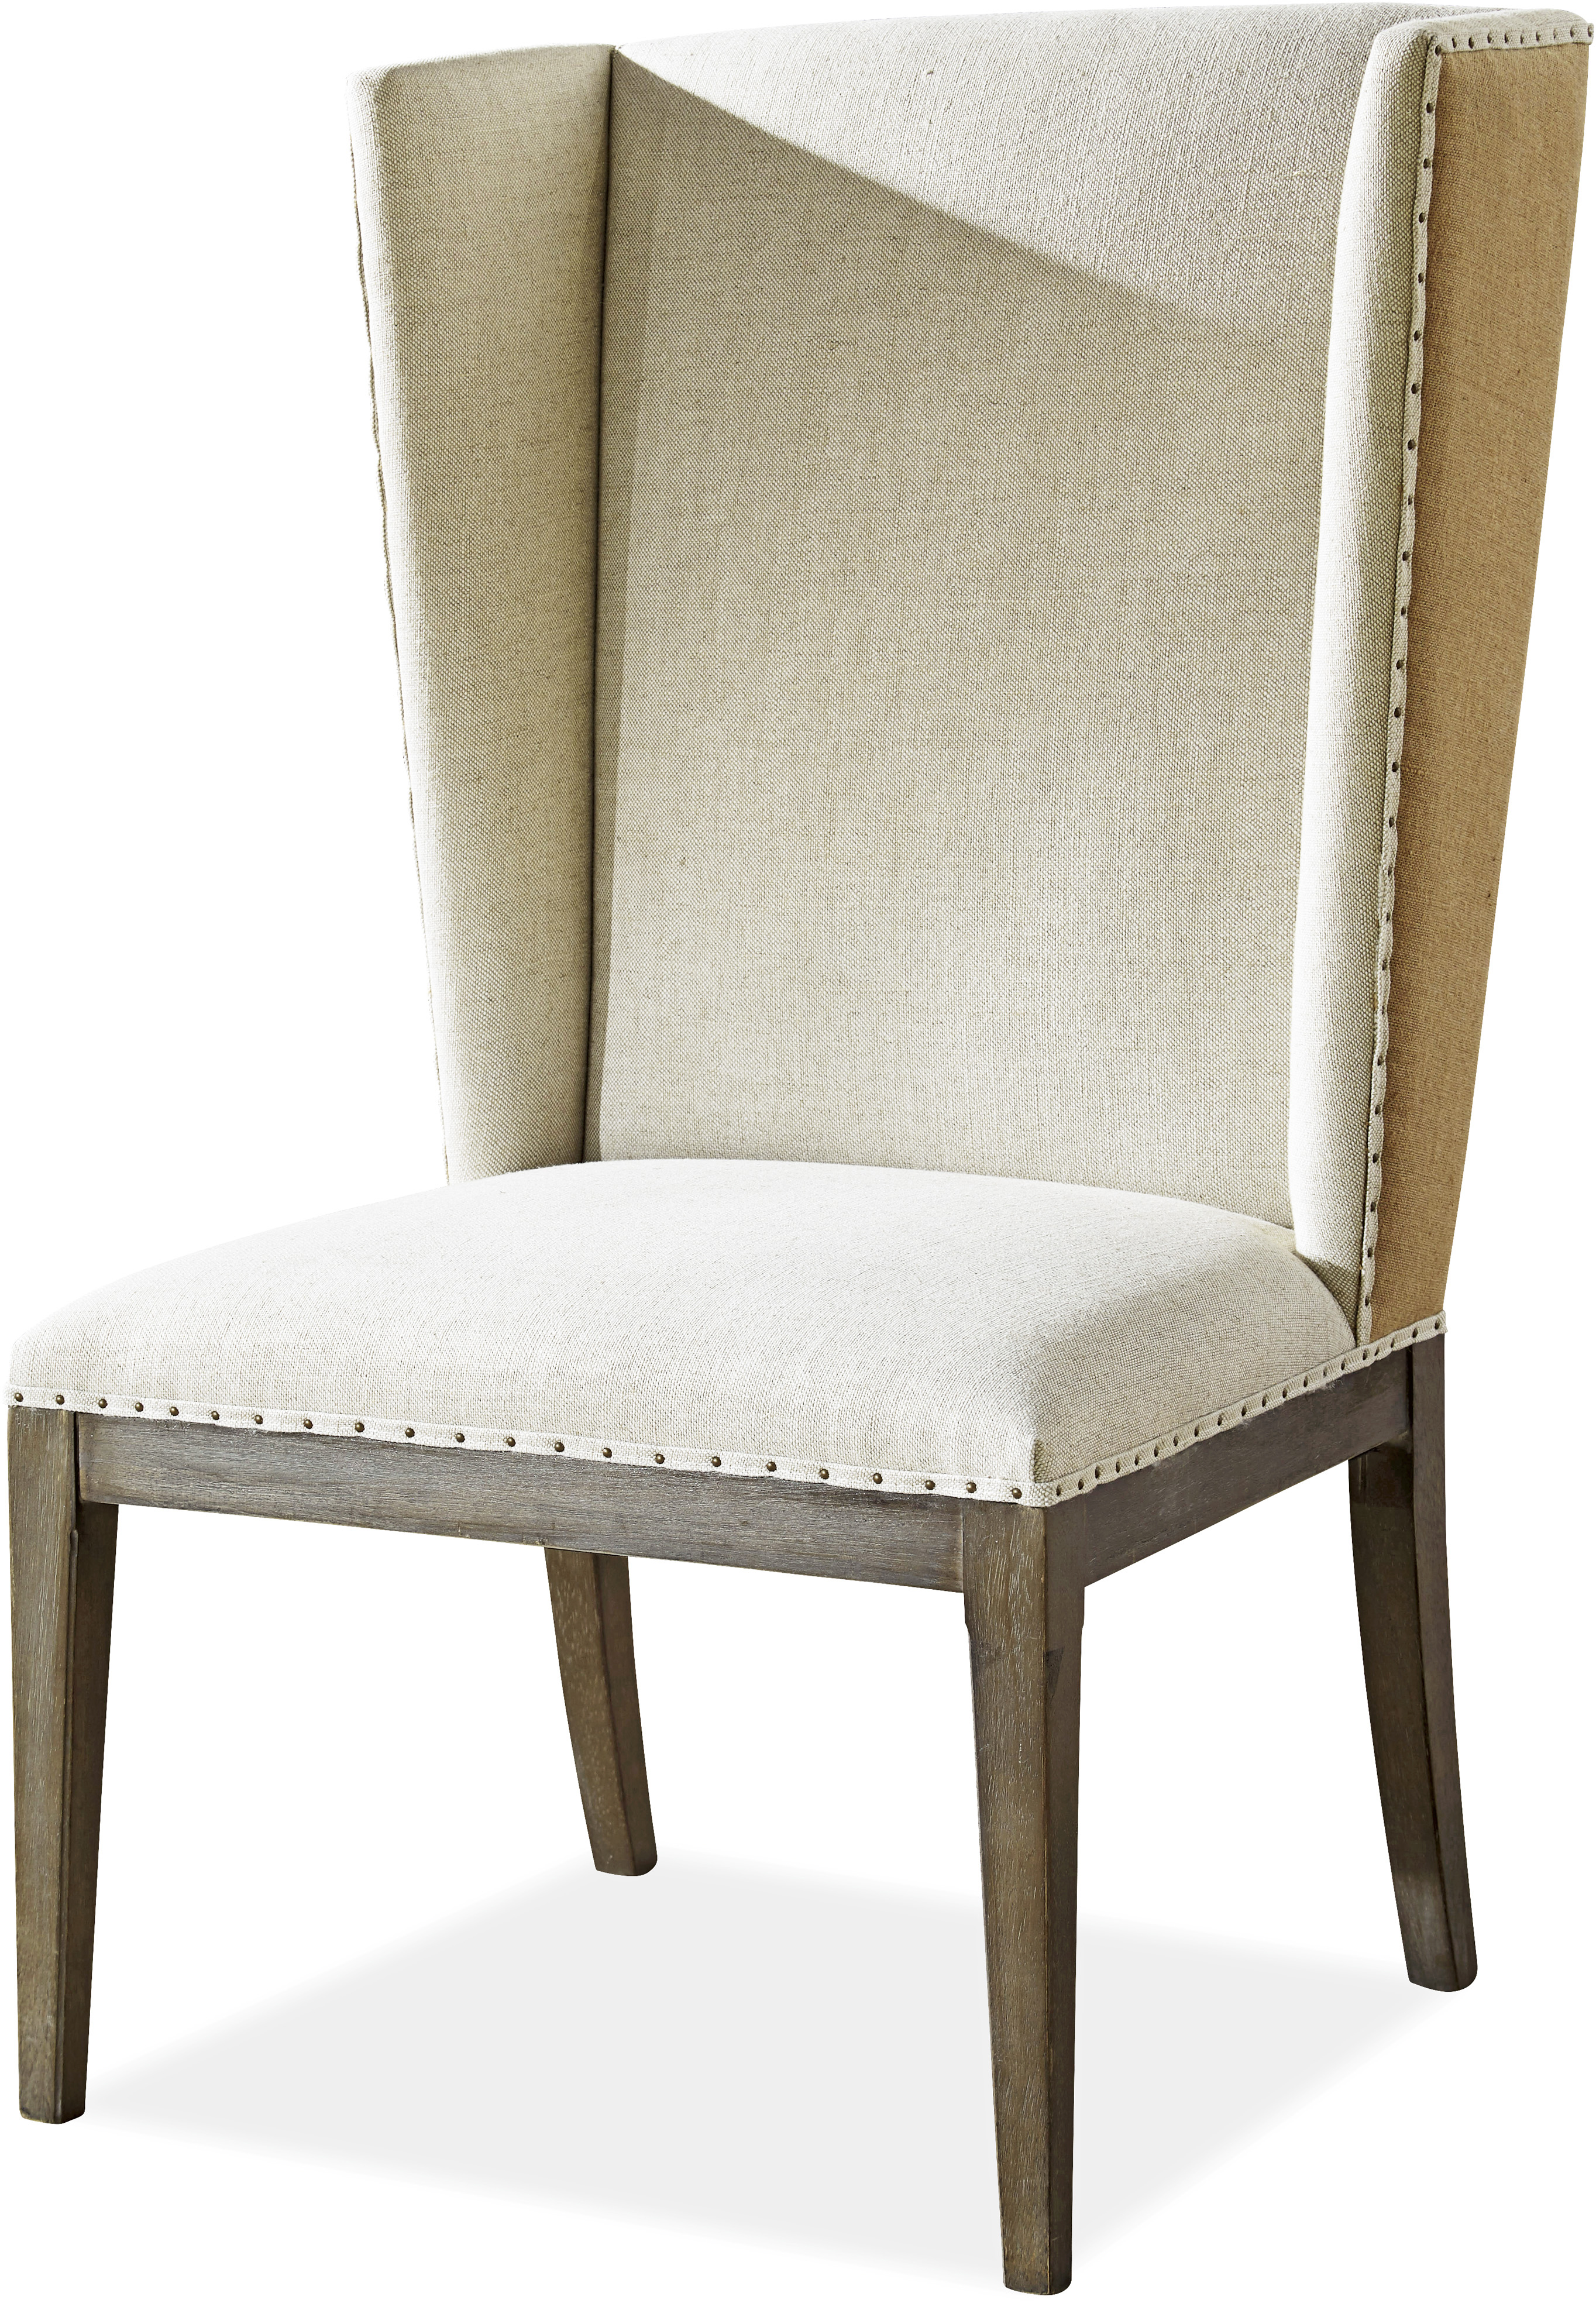 Universal Playlist Host Side Chair - Item Number: 507638